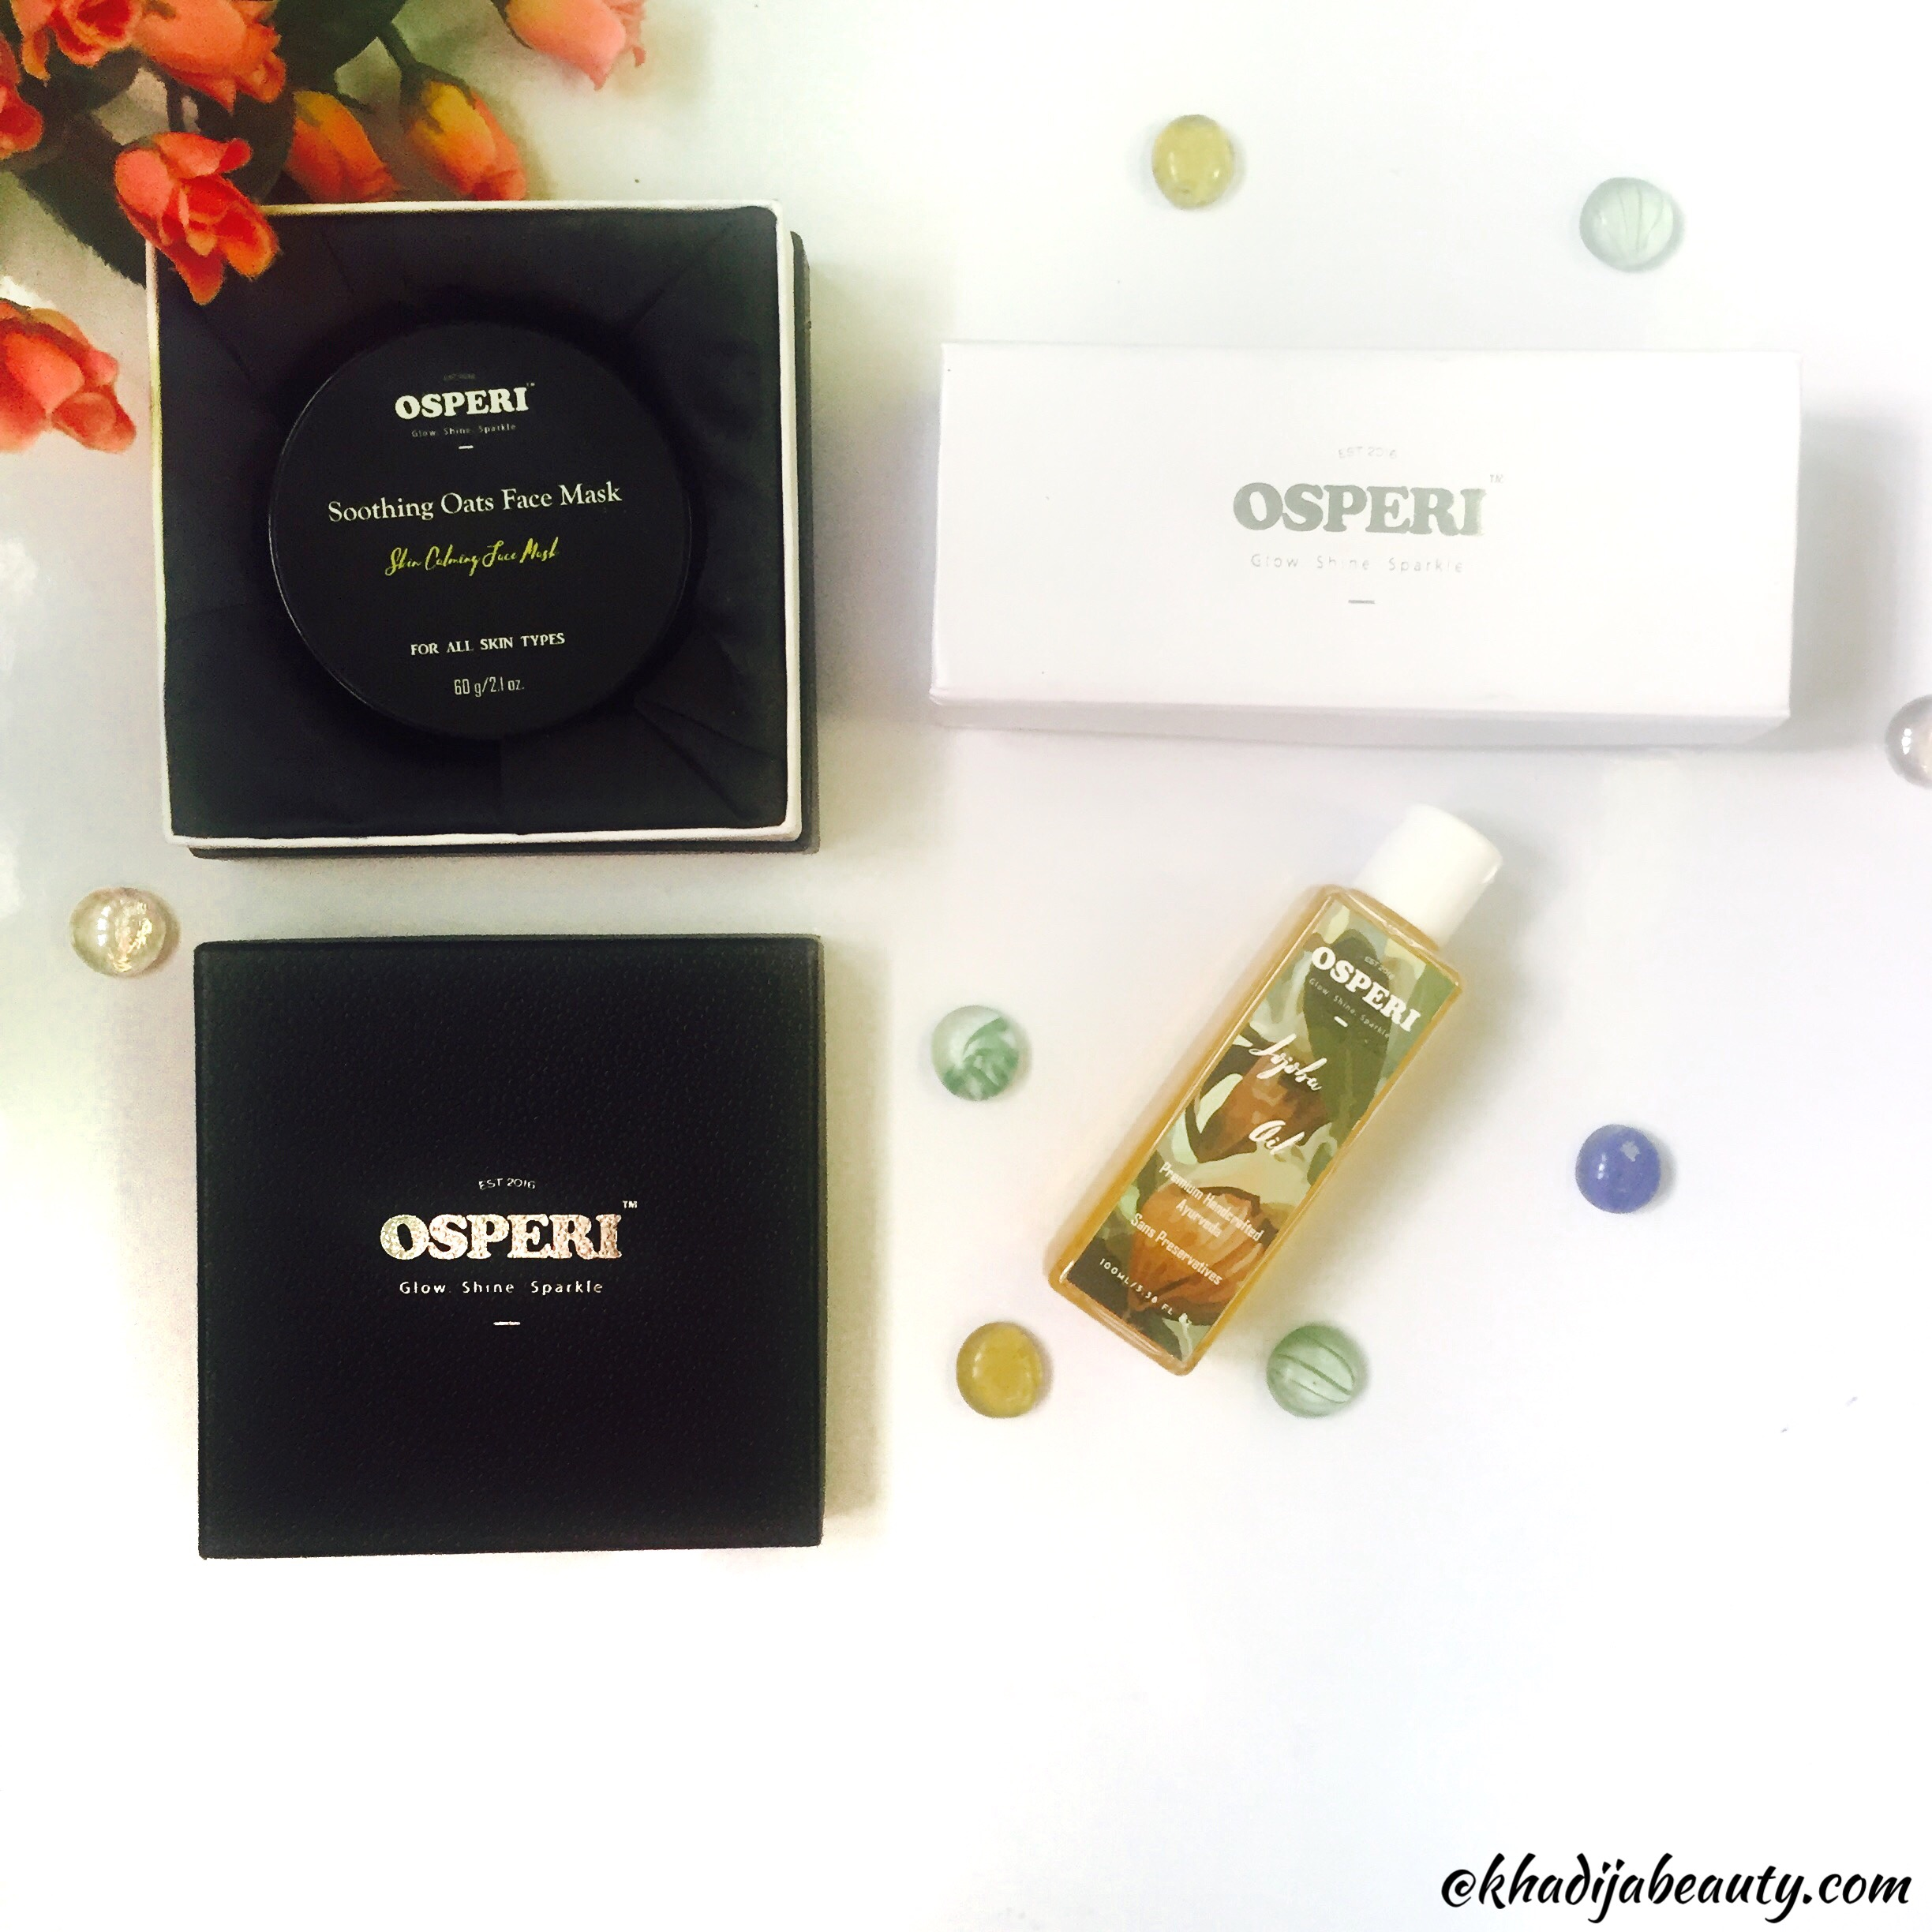 Osperi Review| Get a glowing skin by following customised skincare routine